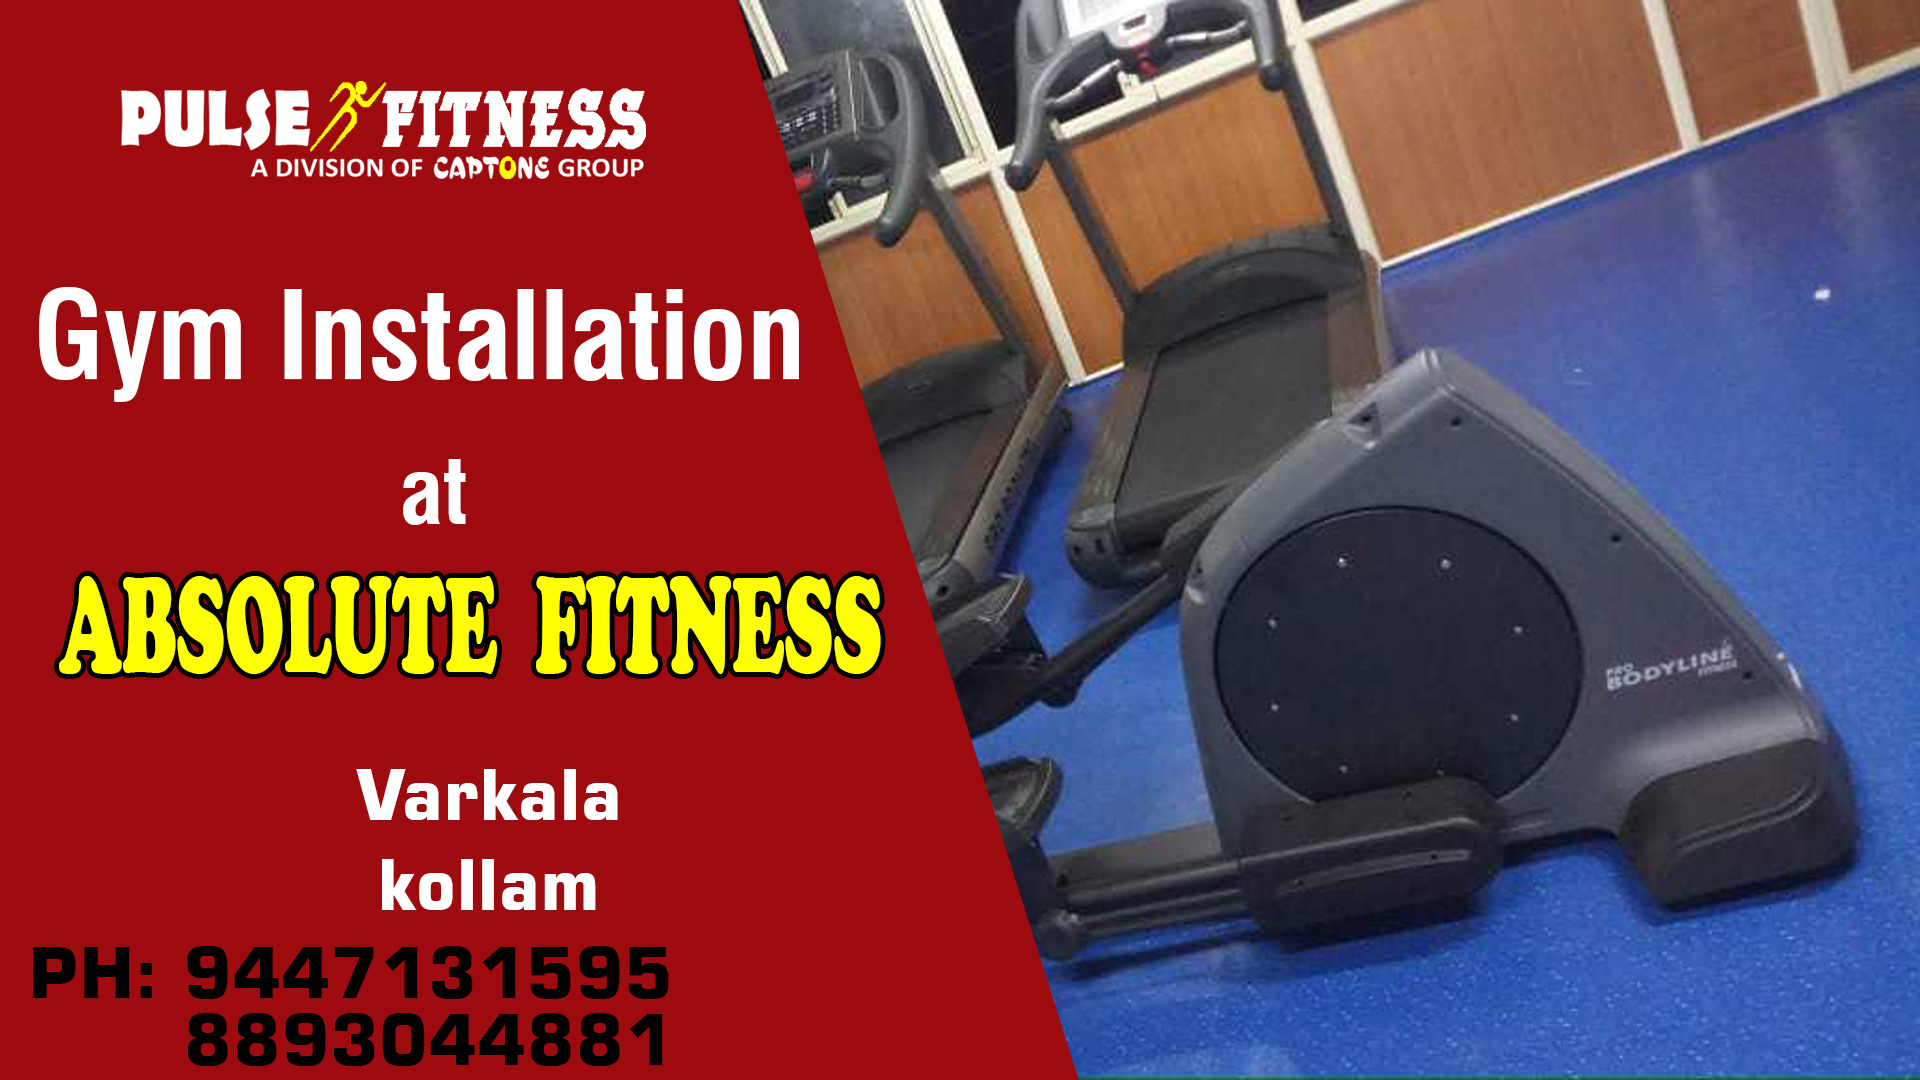 New gym installation from varkala